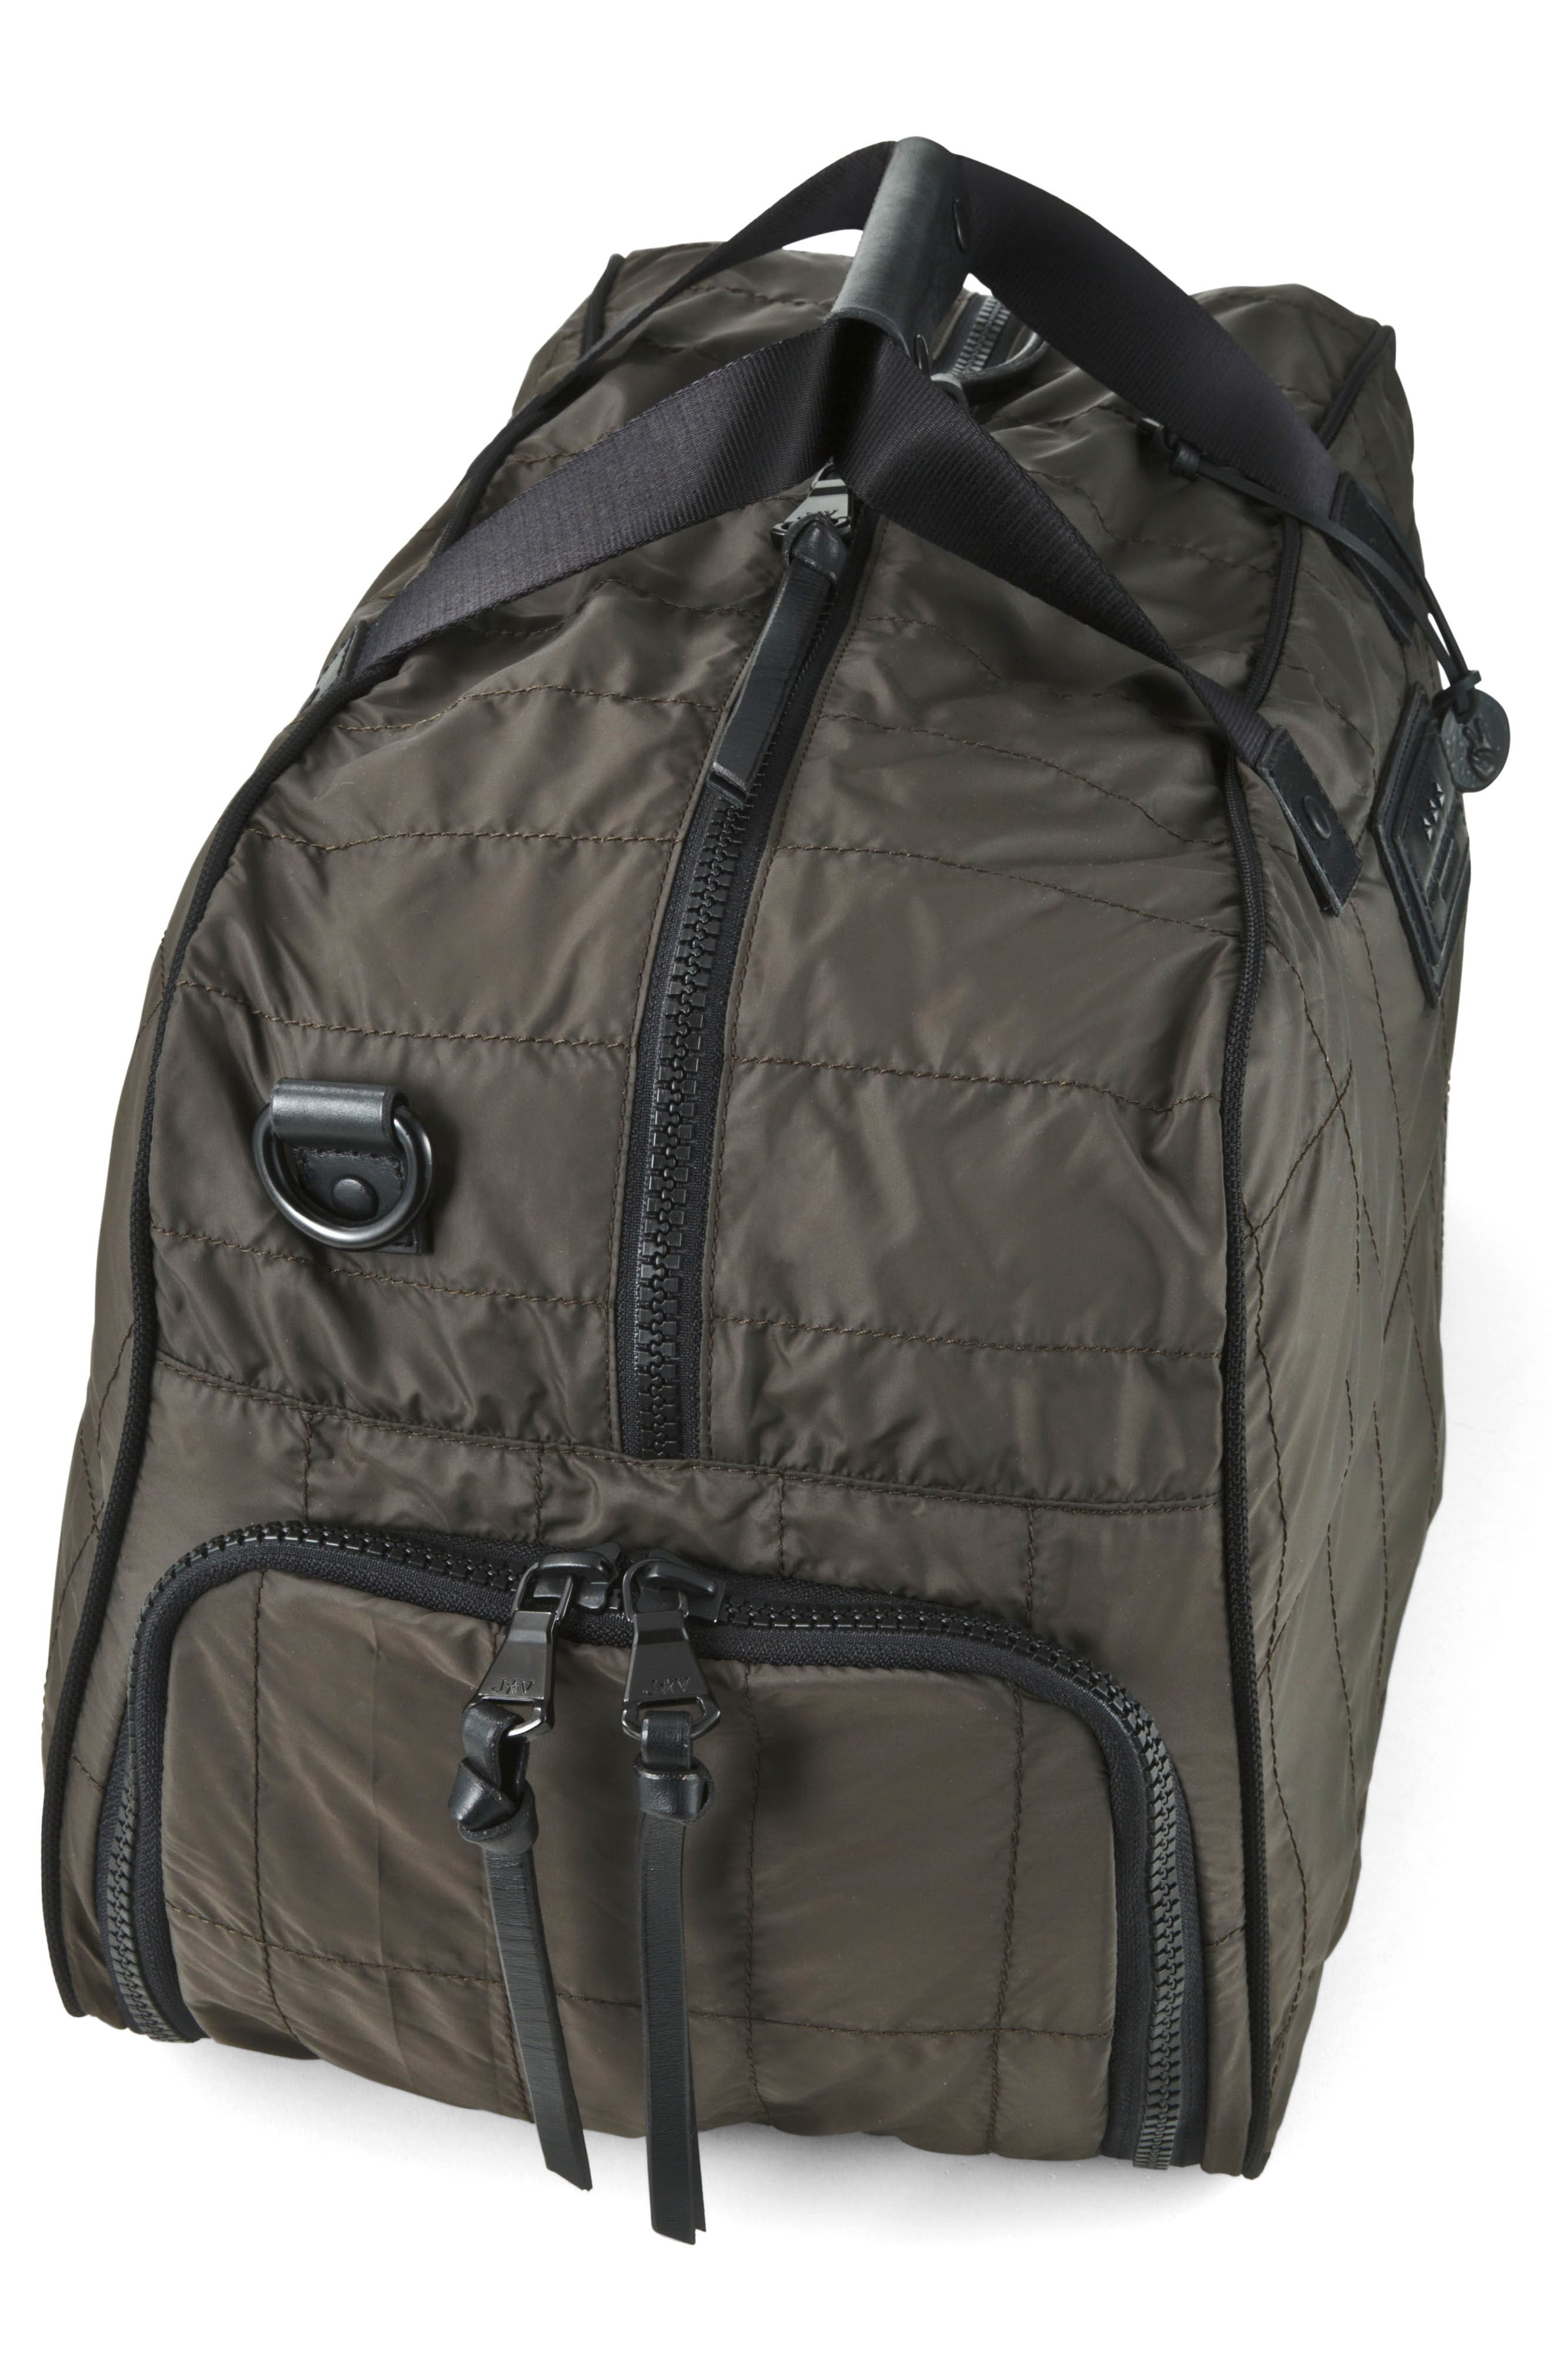 Quilted Nylon Duffel,                             Alternate thumbnail 4, color,                             Army Green